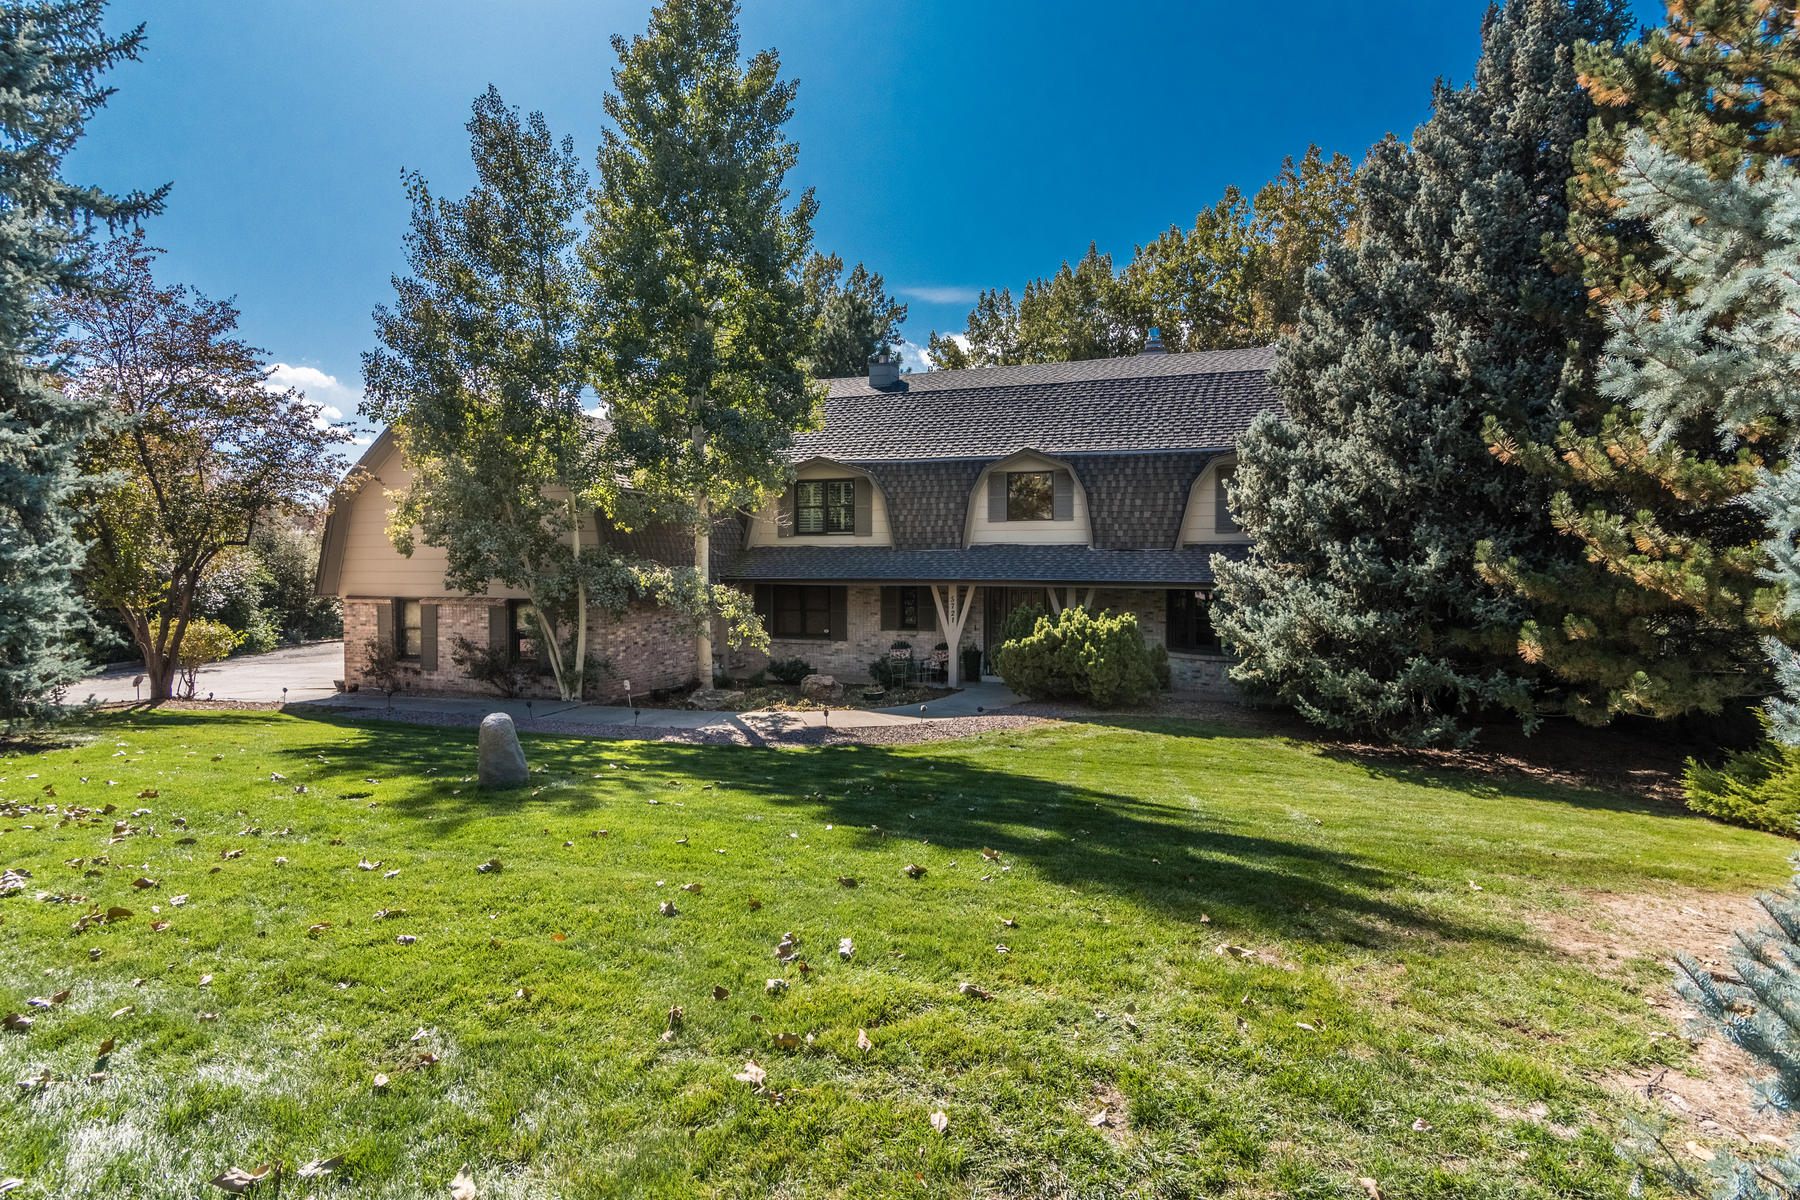 Single Family Homes for Sale at Nestled amidst towering pines on nearly 2 acres! 5721 Green Oaks Dr Greenwood Village, Colorado 80121 United States